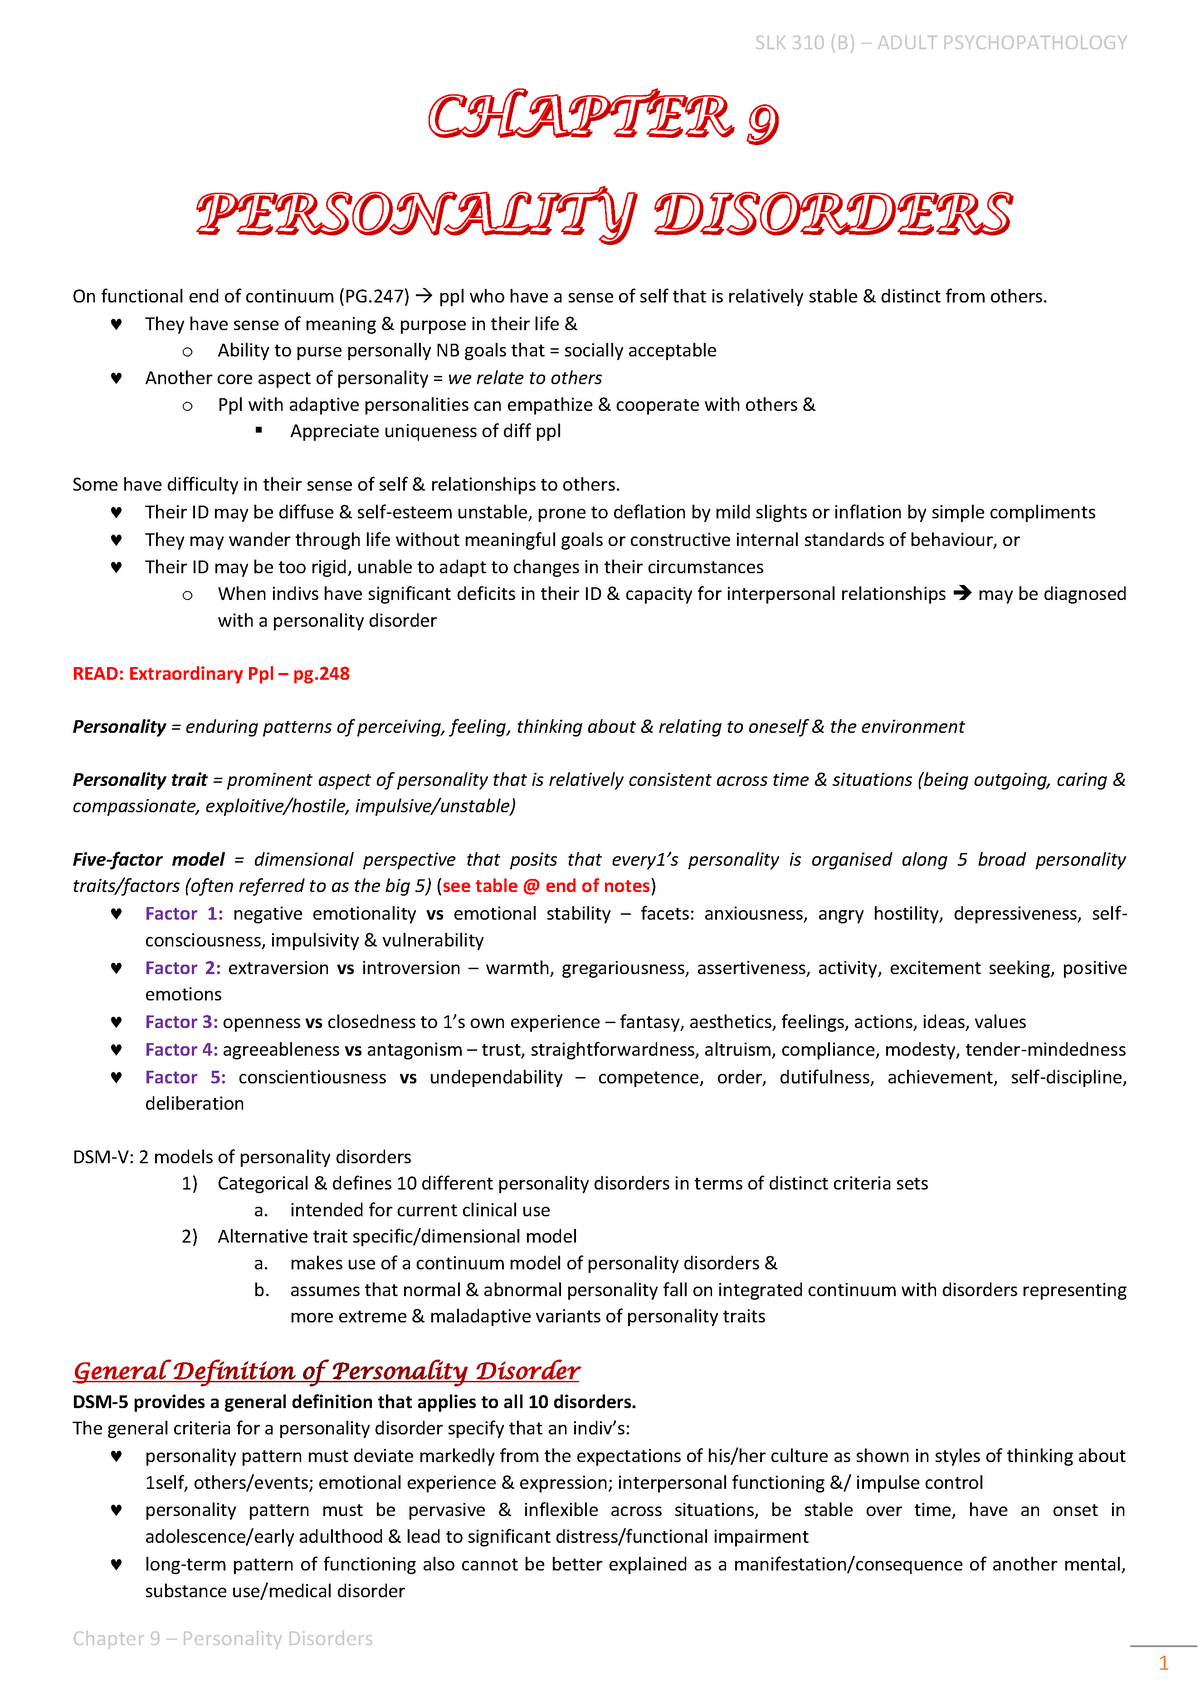 Chapter 9 - Personality Disorders - Psychology SLK 310 - UP